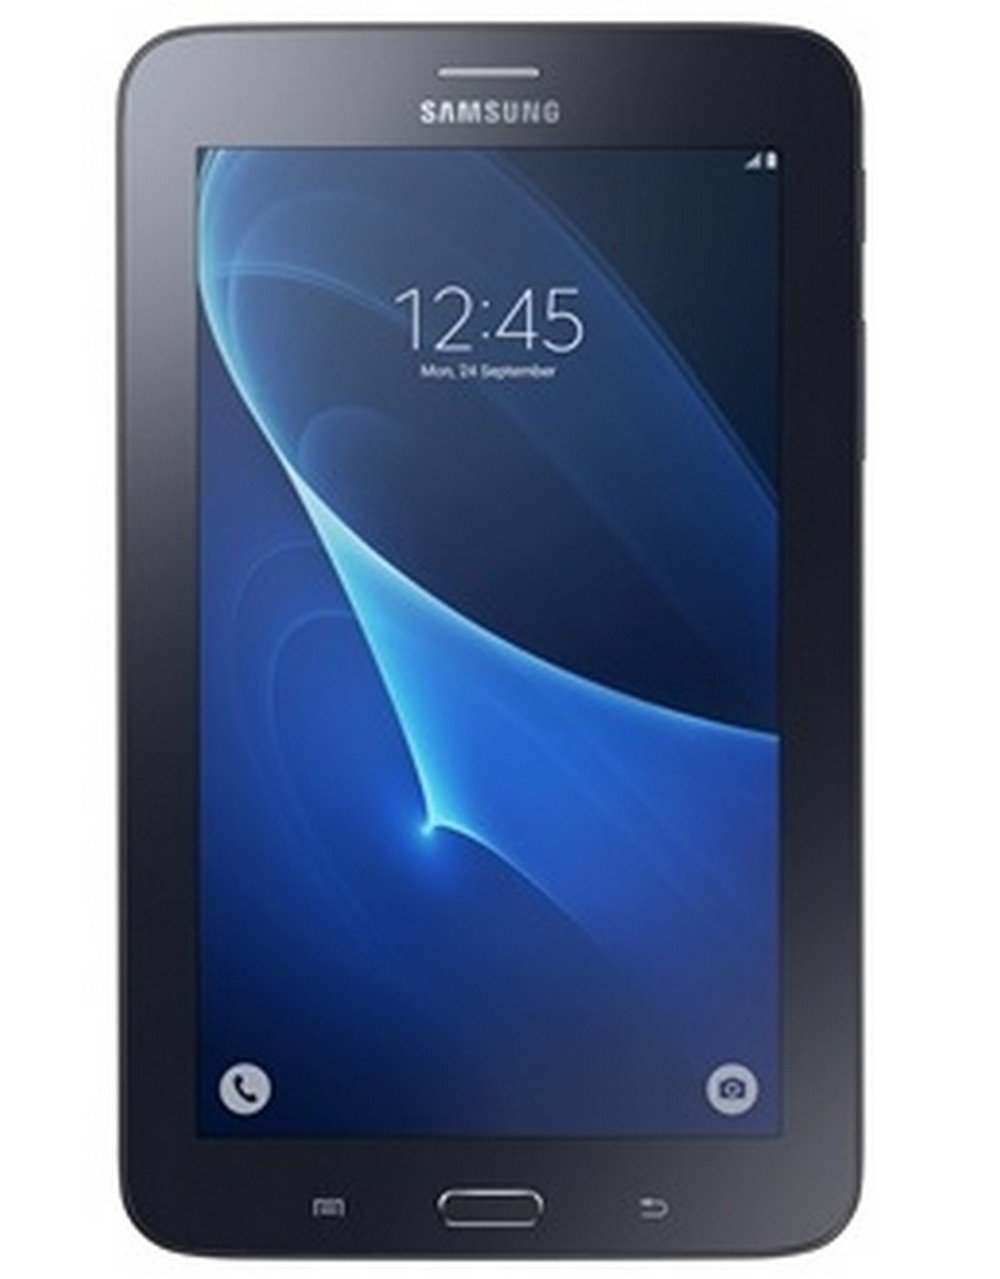 Samsung 7 inch Tablet (8GB,Wi-Fi+Voice Calling) low price